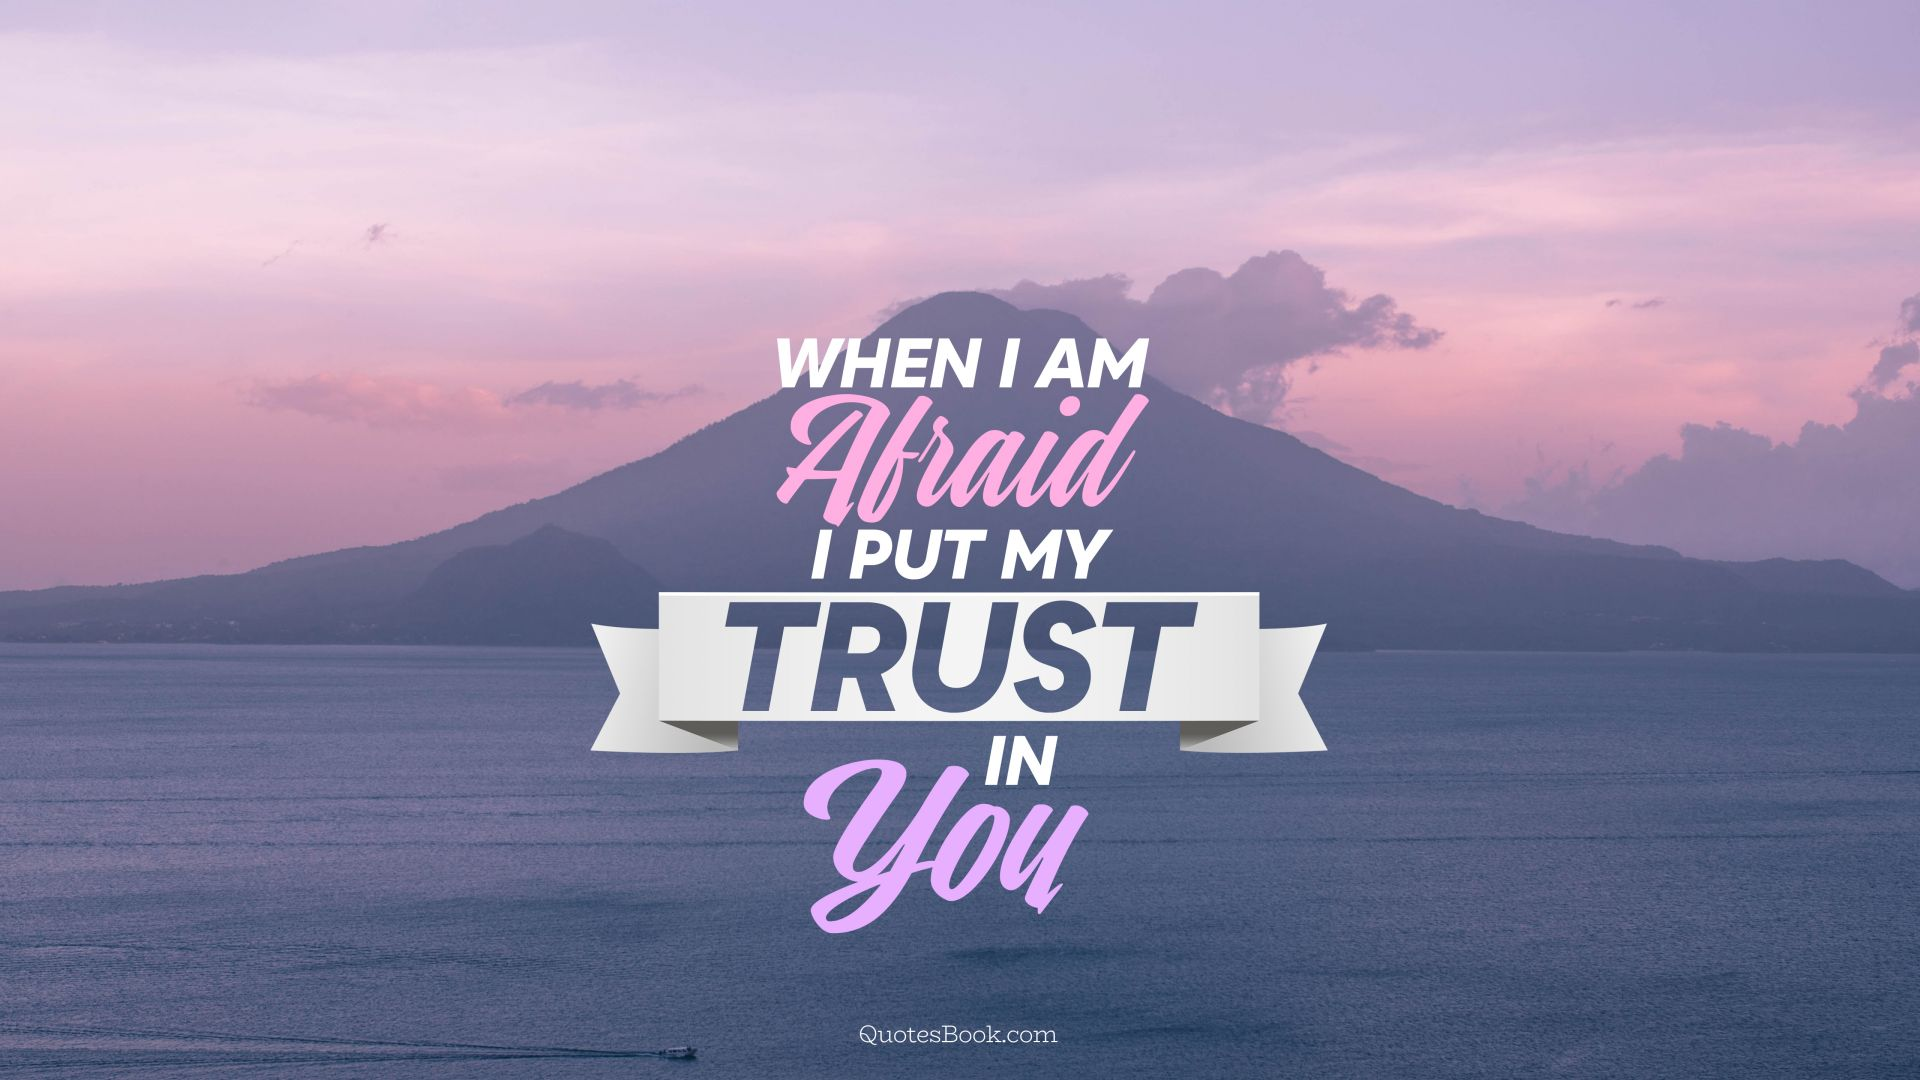 When I Am Afraid I Put My Trust In You Quotesbook